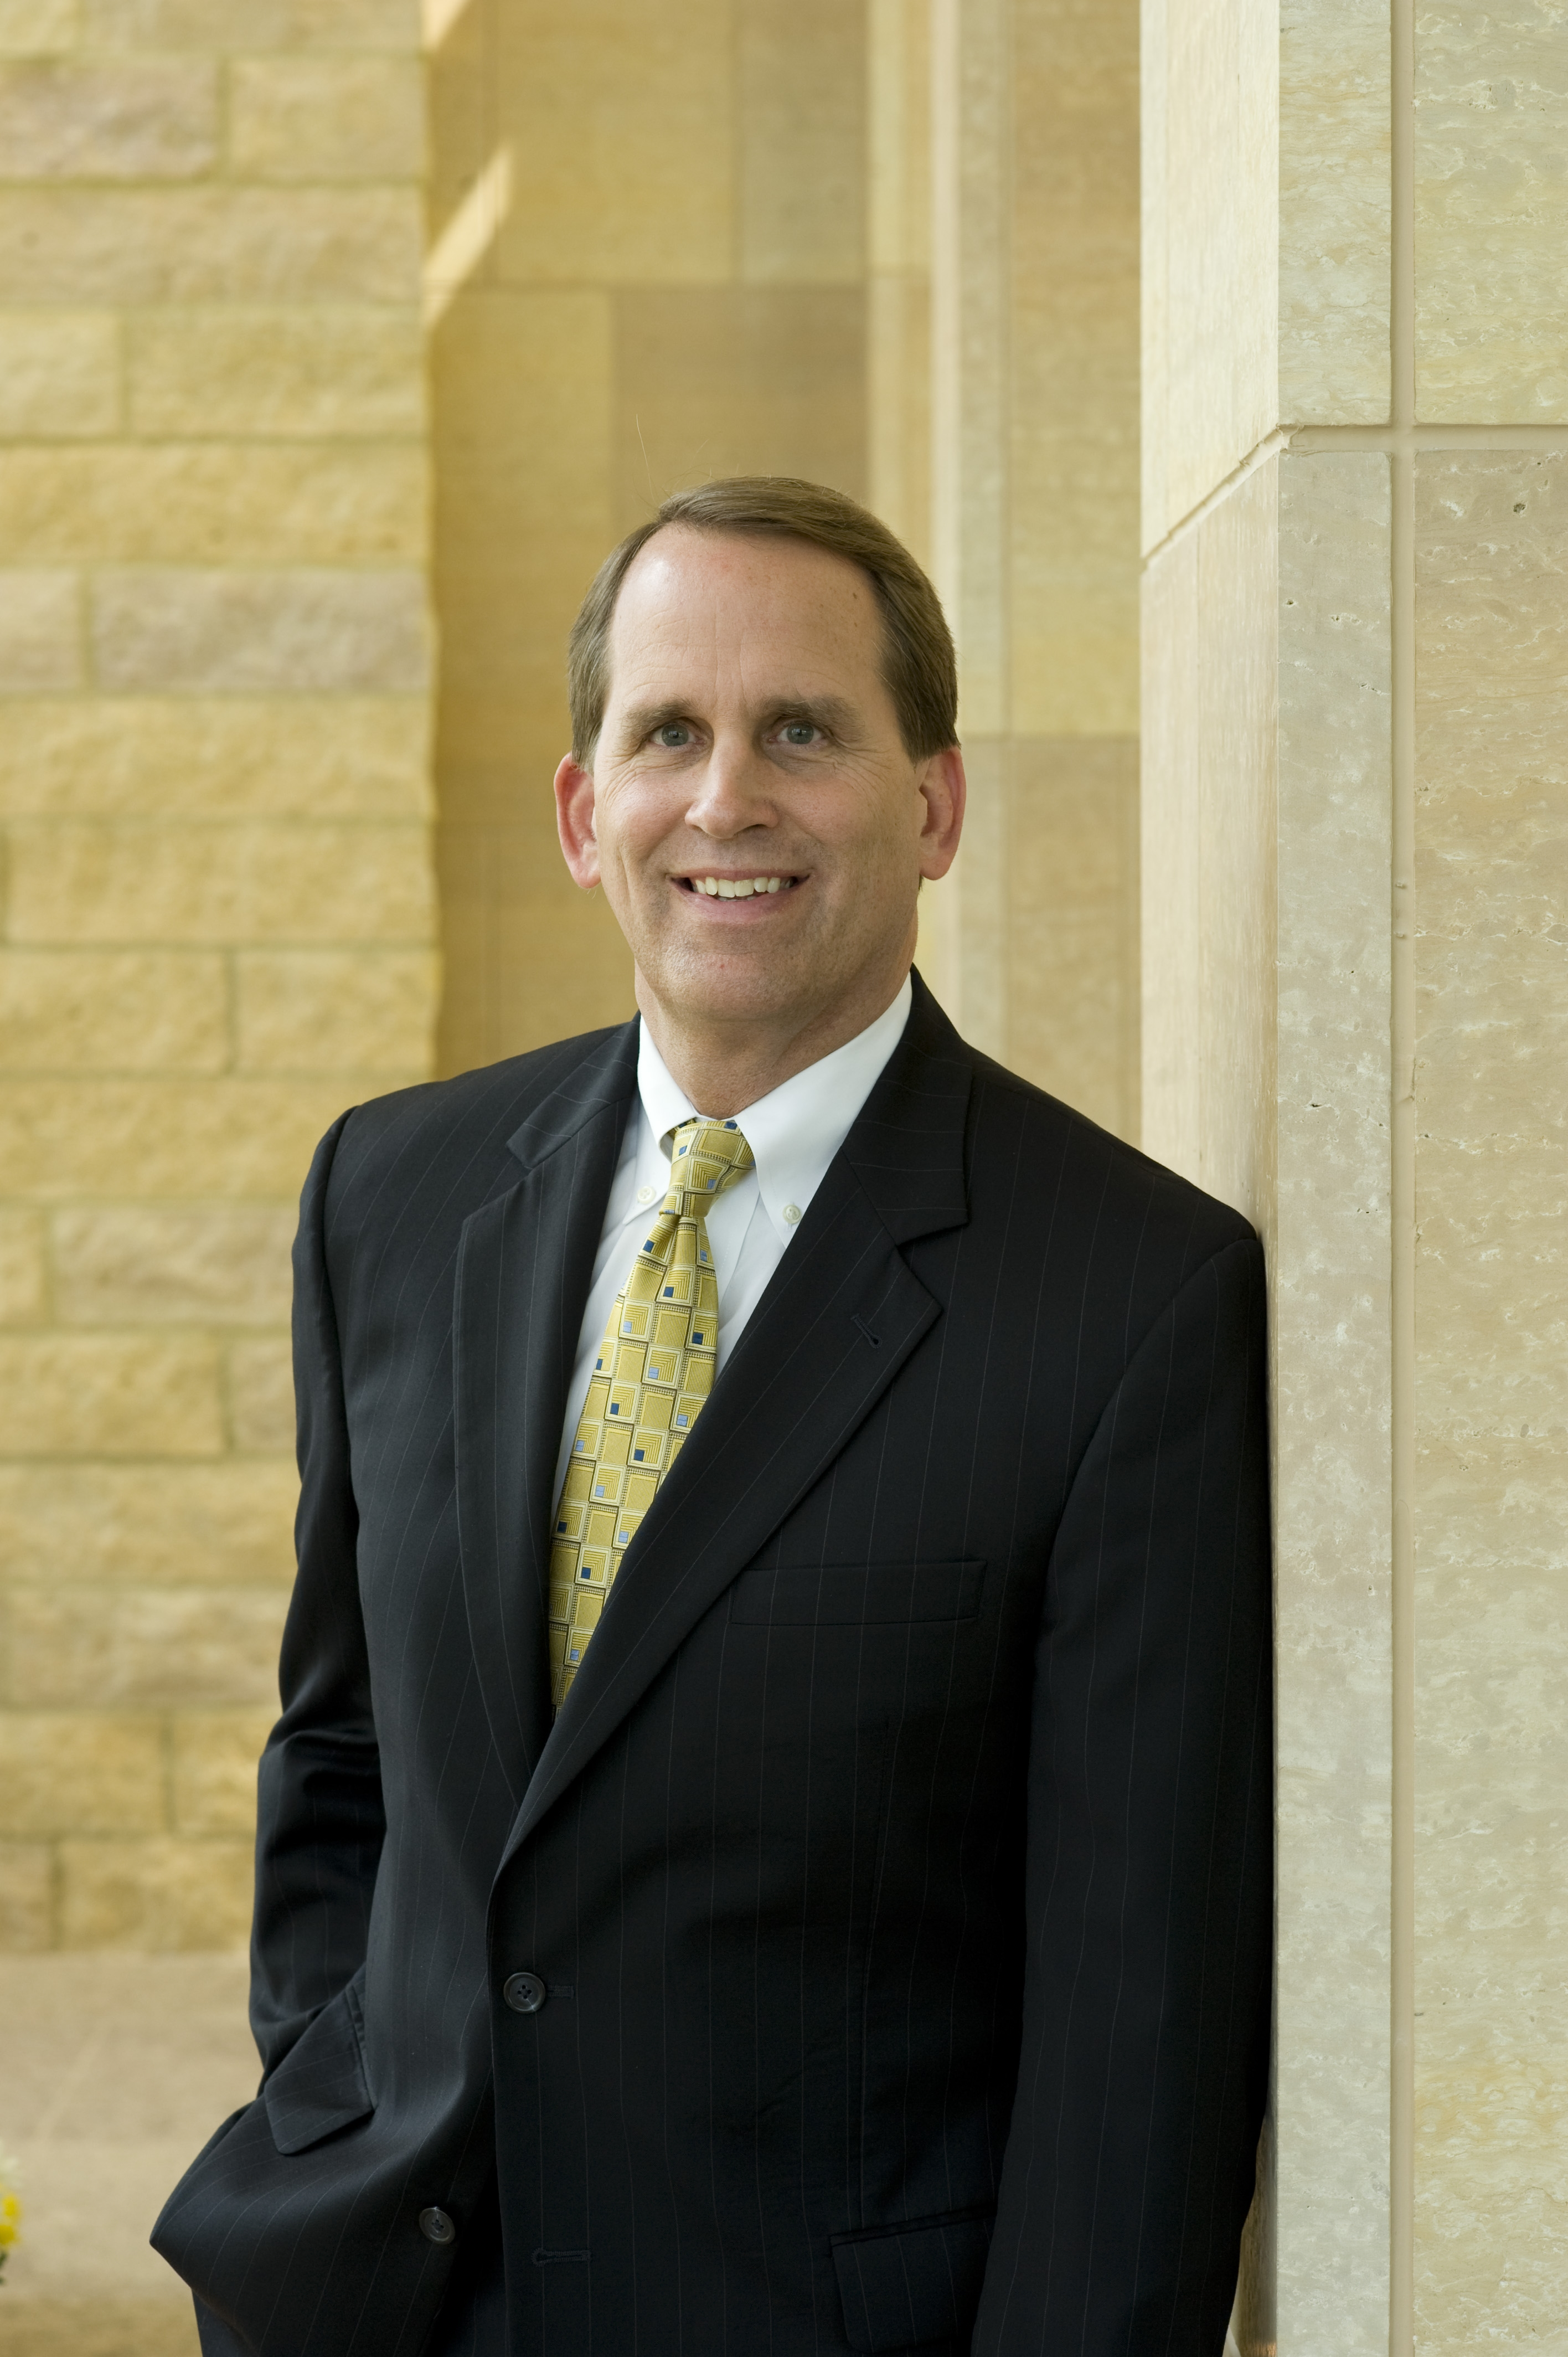 Former corporate chief ethics officer to speak at Pamplin ethics conference | Virginia Tech ...